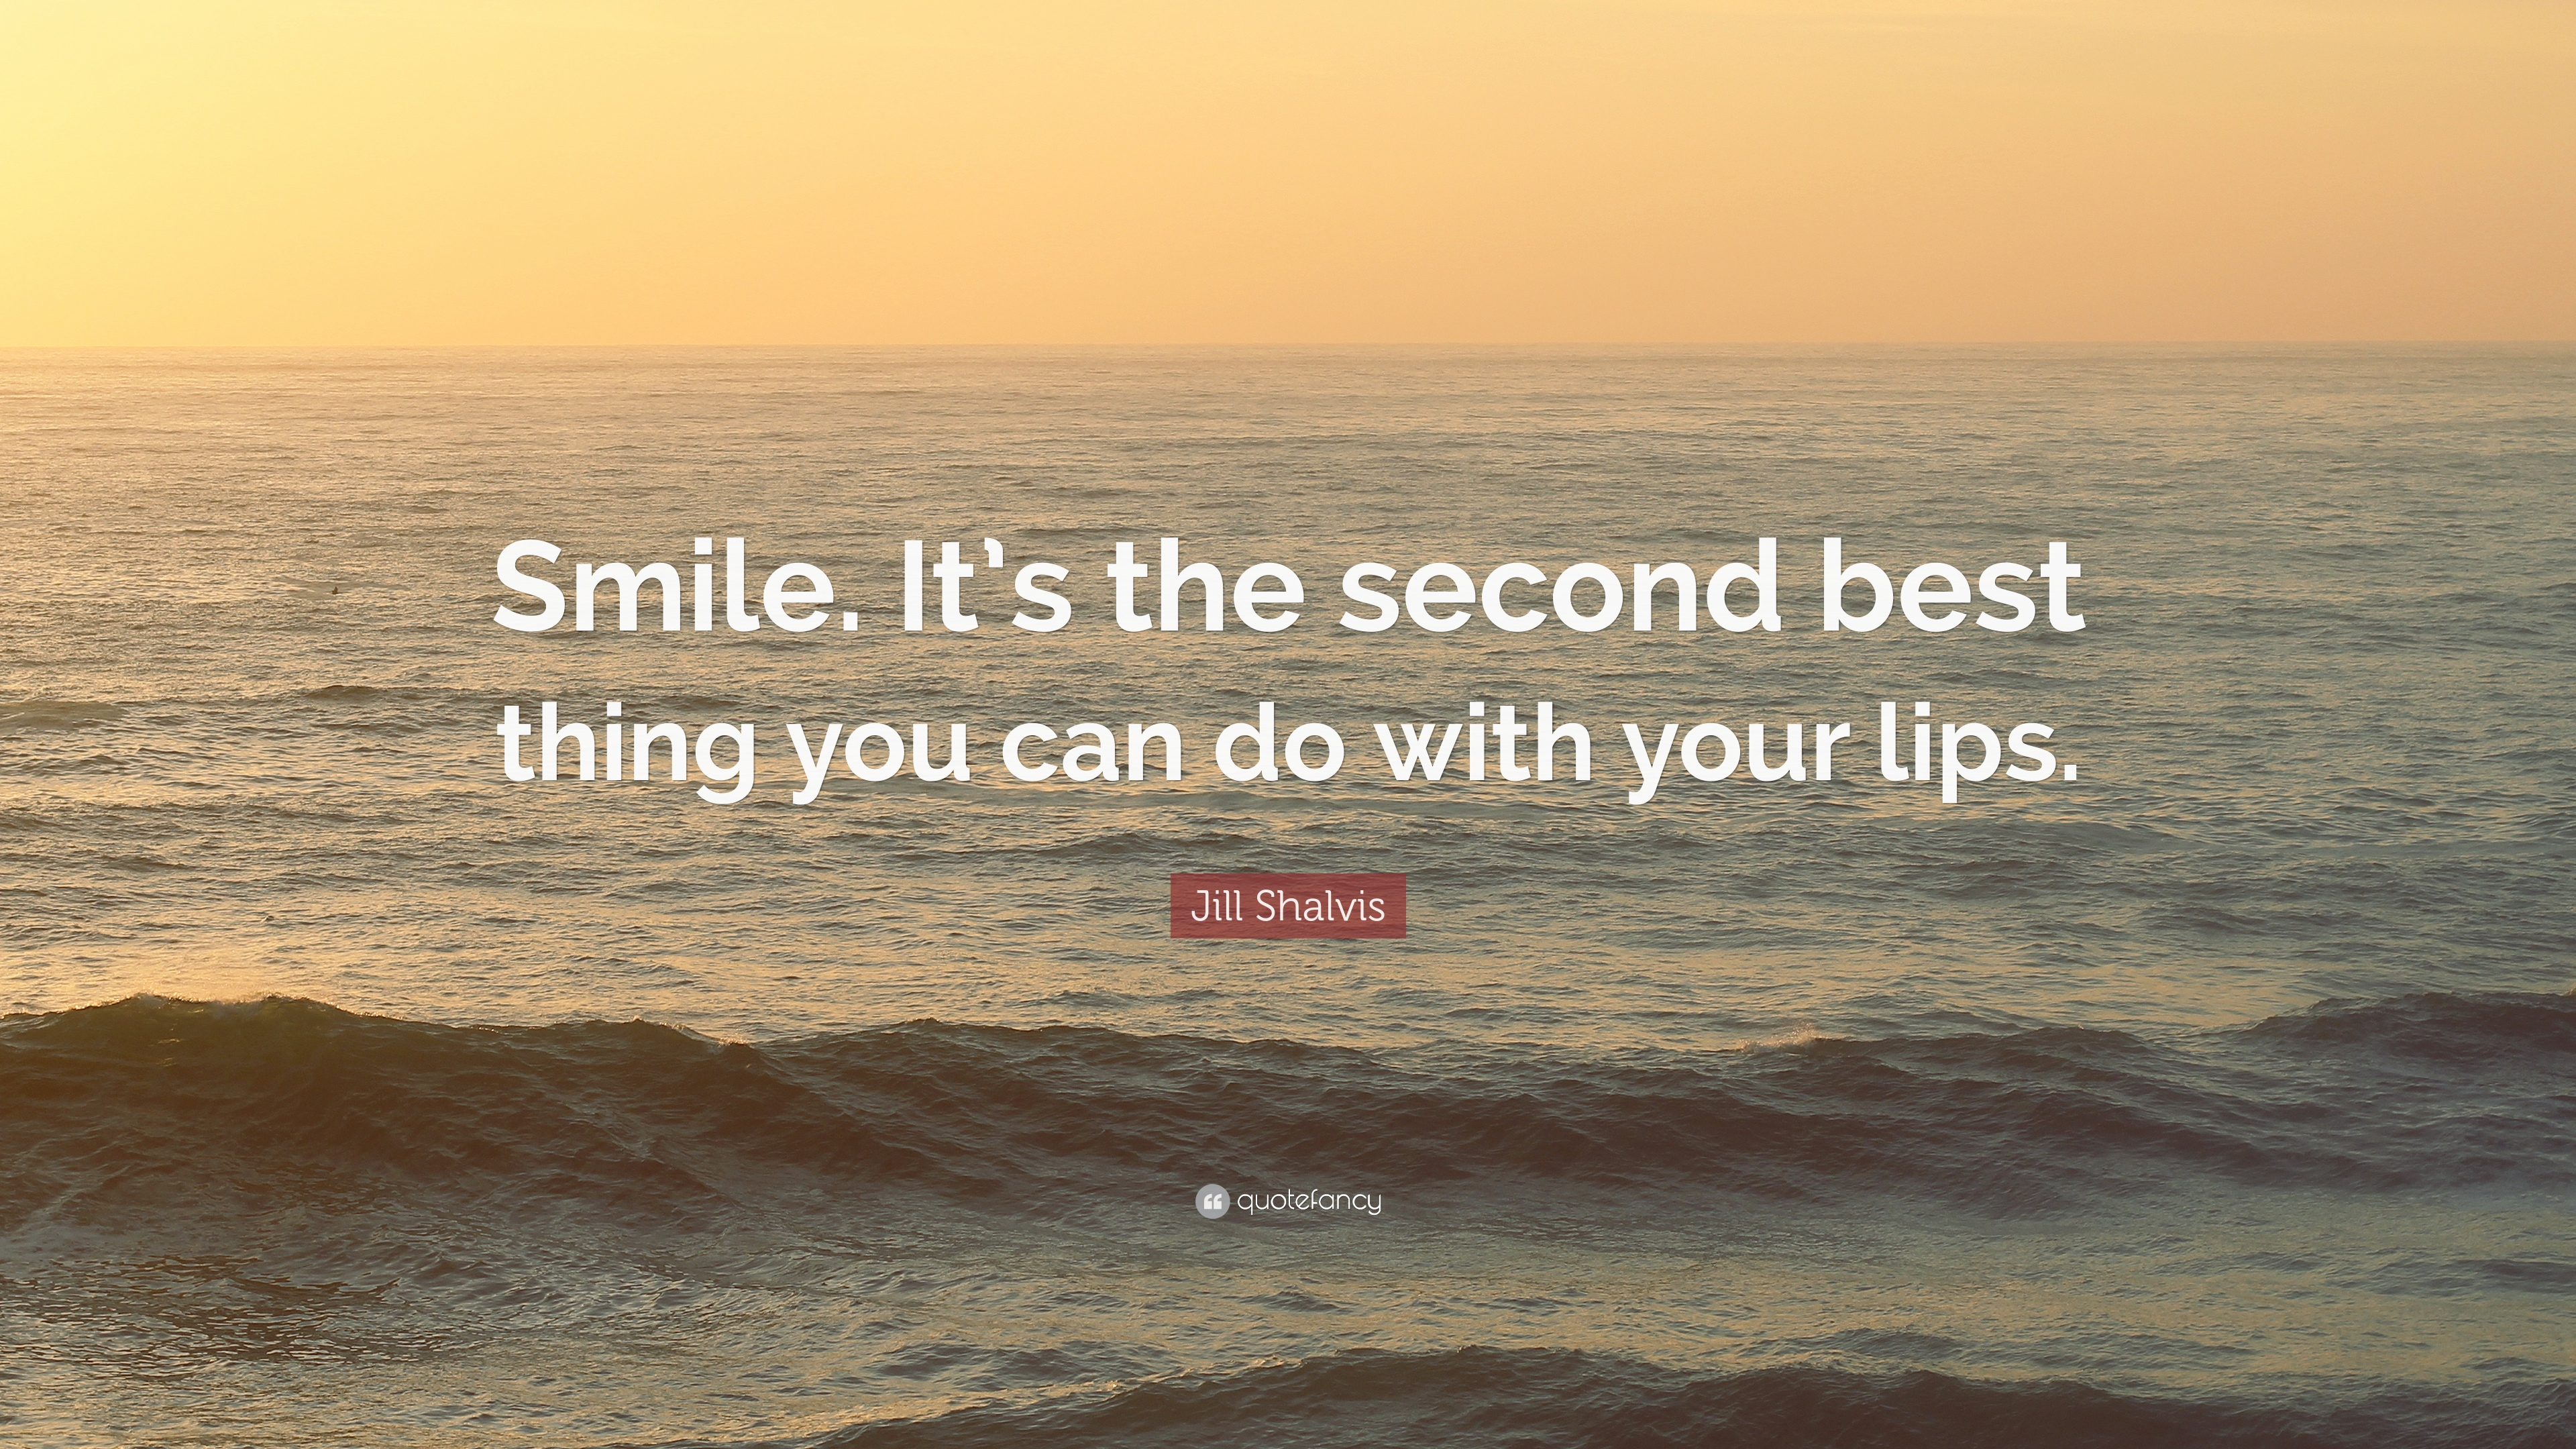 Quotes On Smile Smile Quotes 40 Wallpapers  Quotefancy